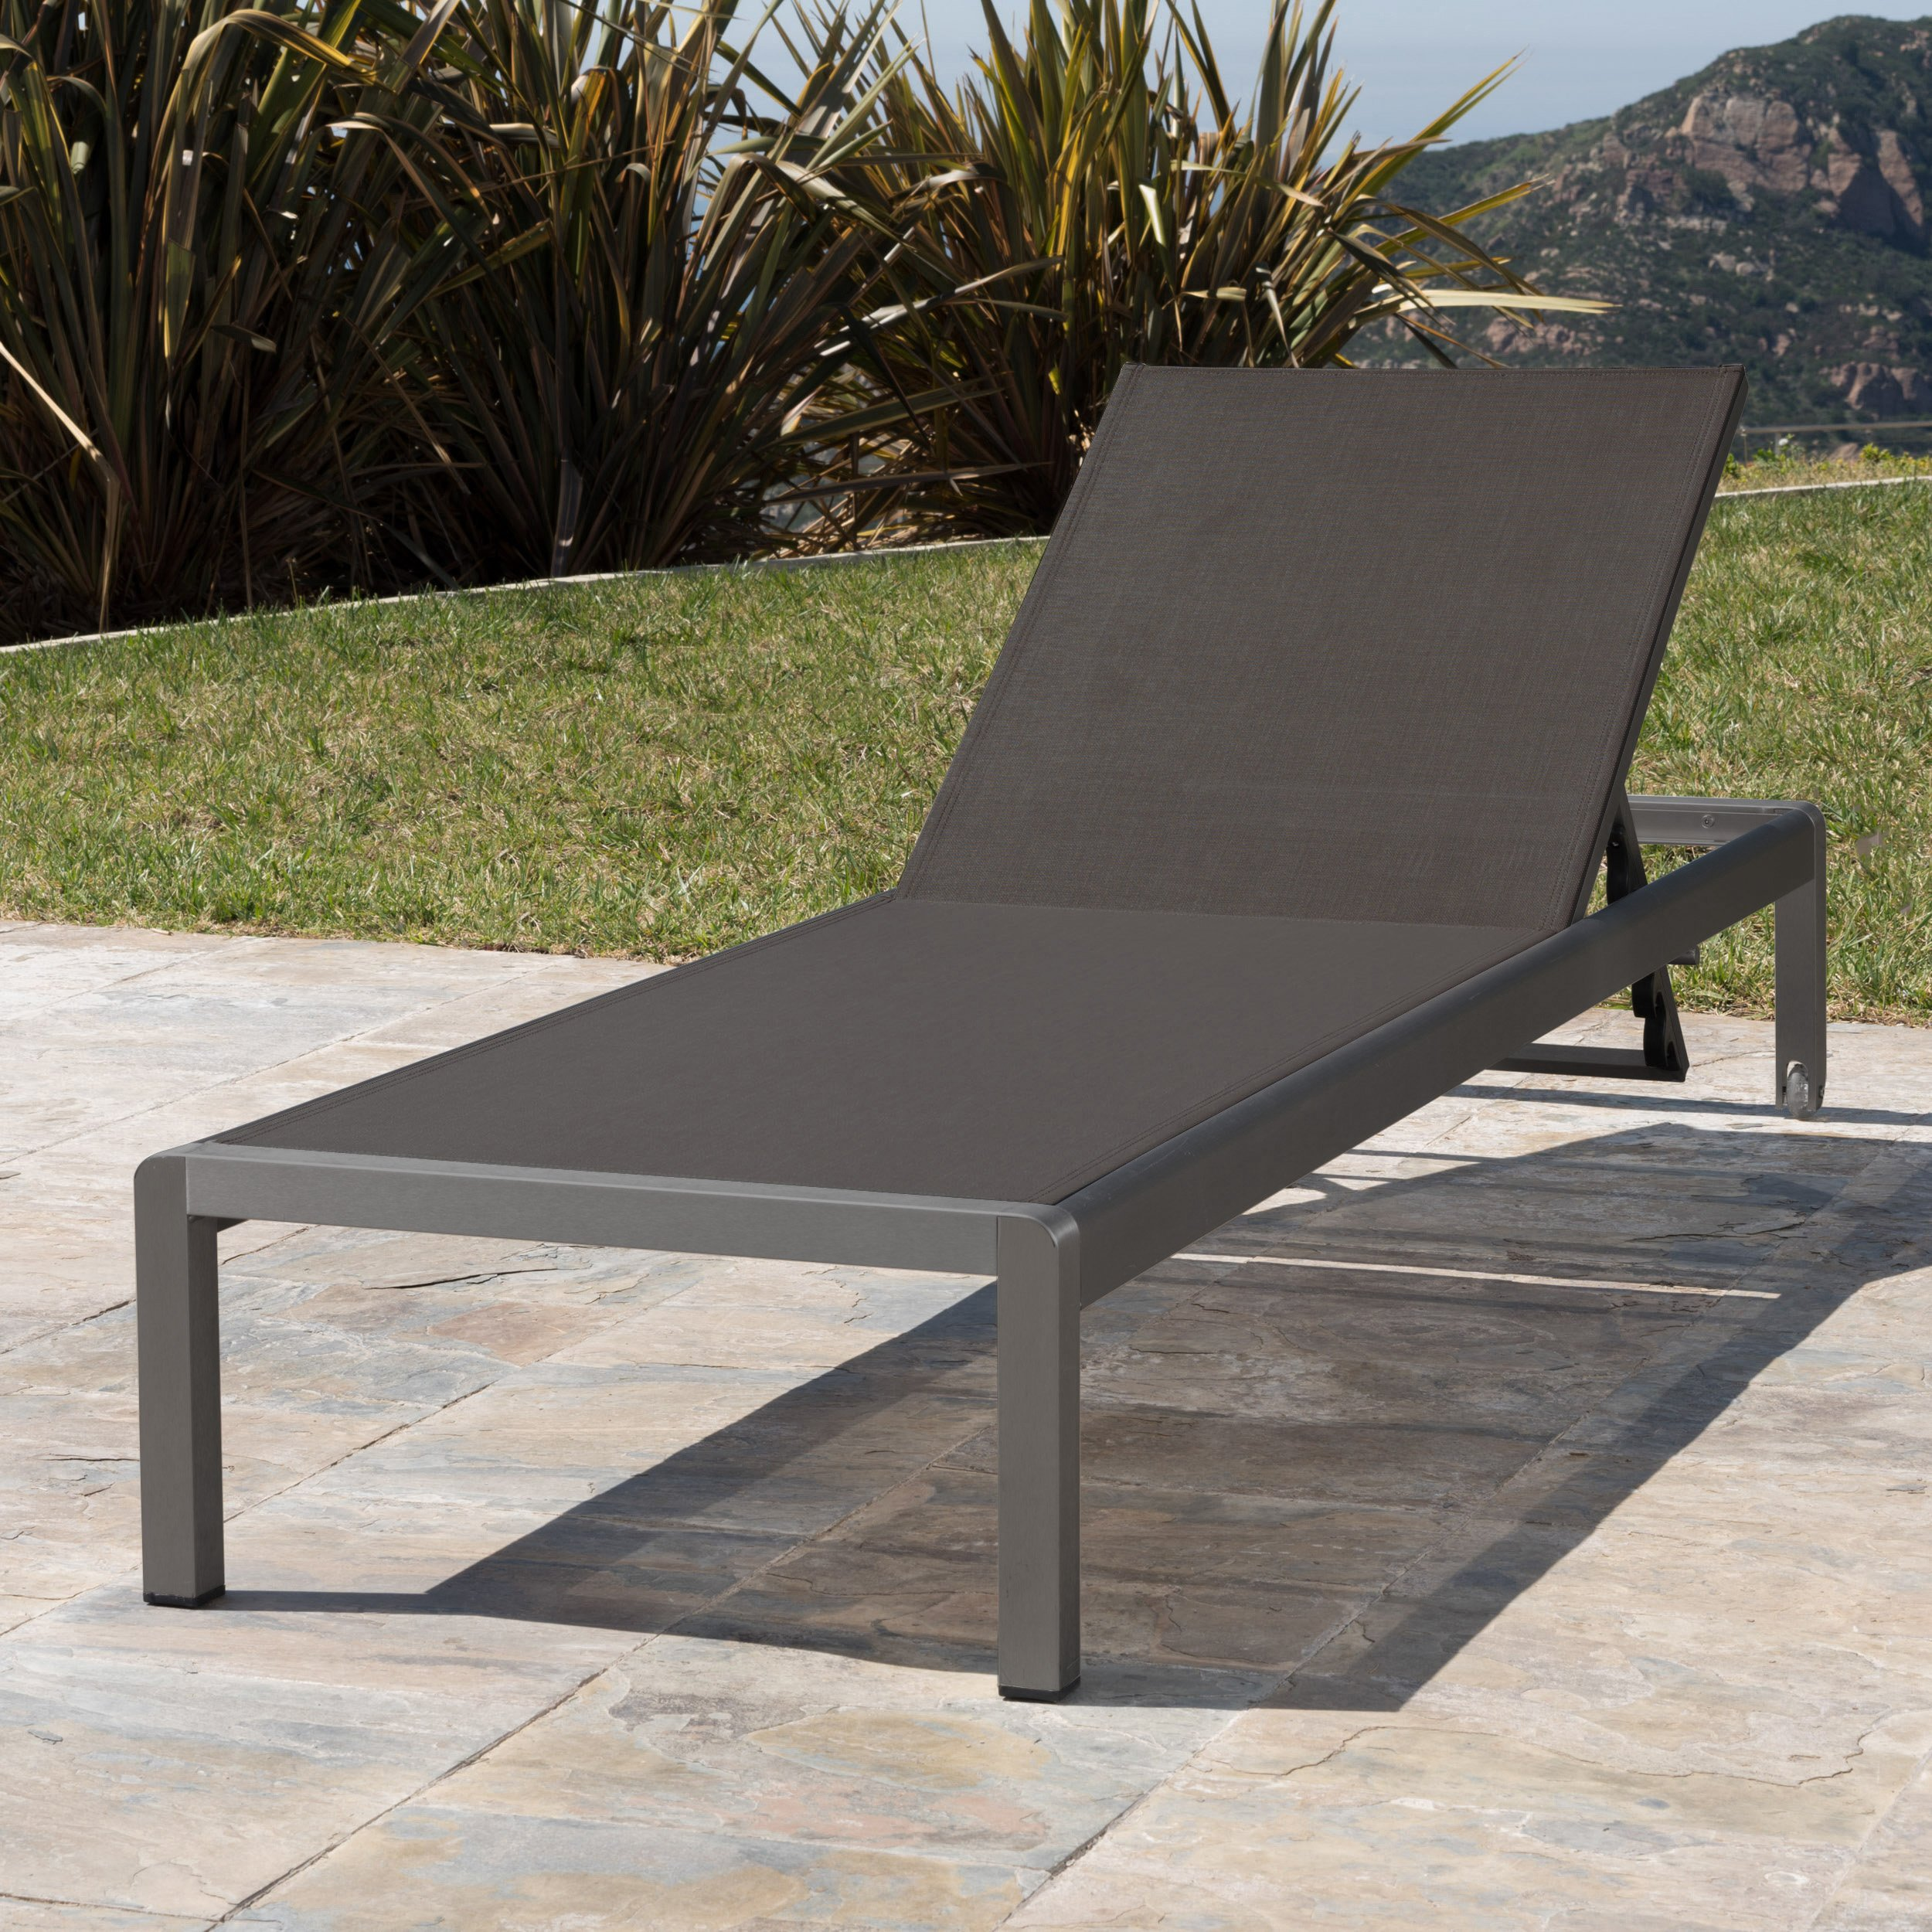 Crested Bay Patio Furniture | Outdoor Grey Aluminum Chaise Lounge with Dark Grey Mesh Seat